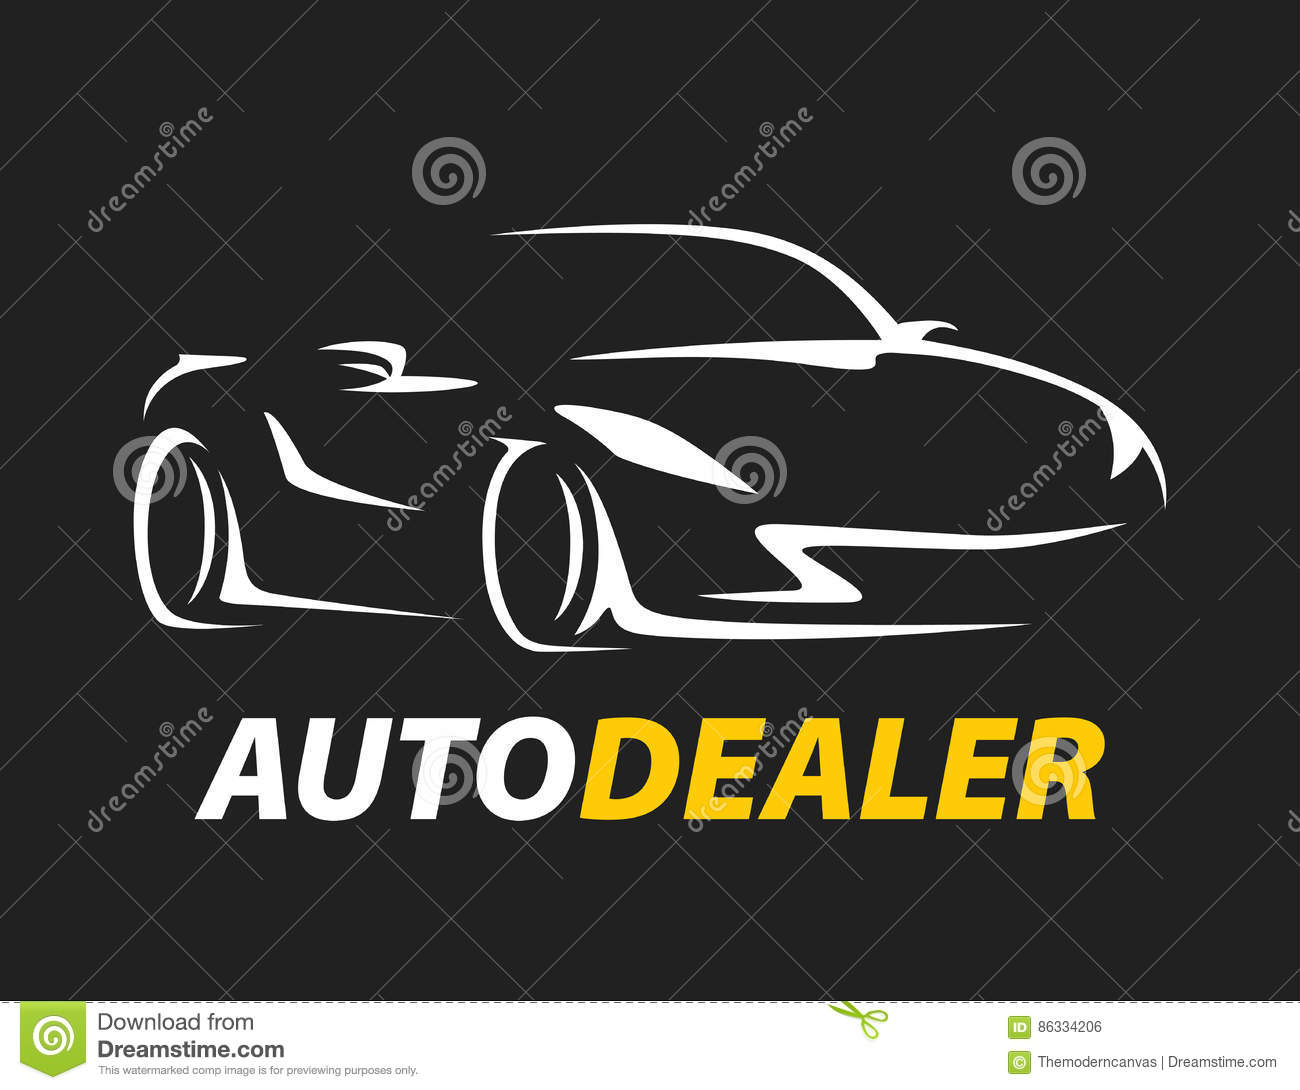 Concept Auto Dealer Car Logo With Supercar Sports Vehicle